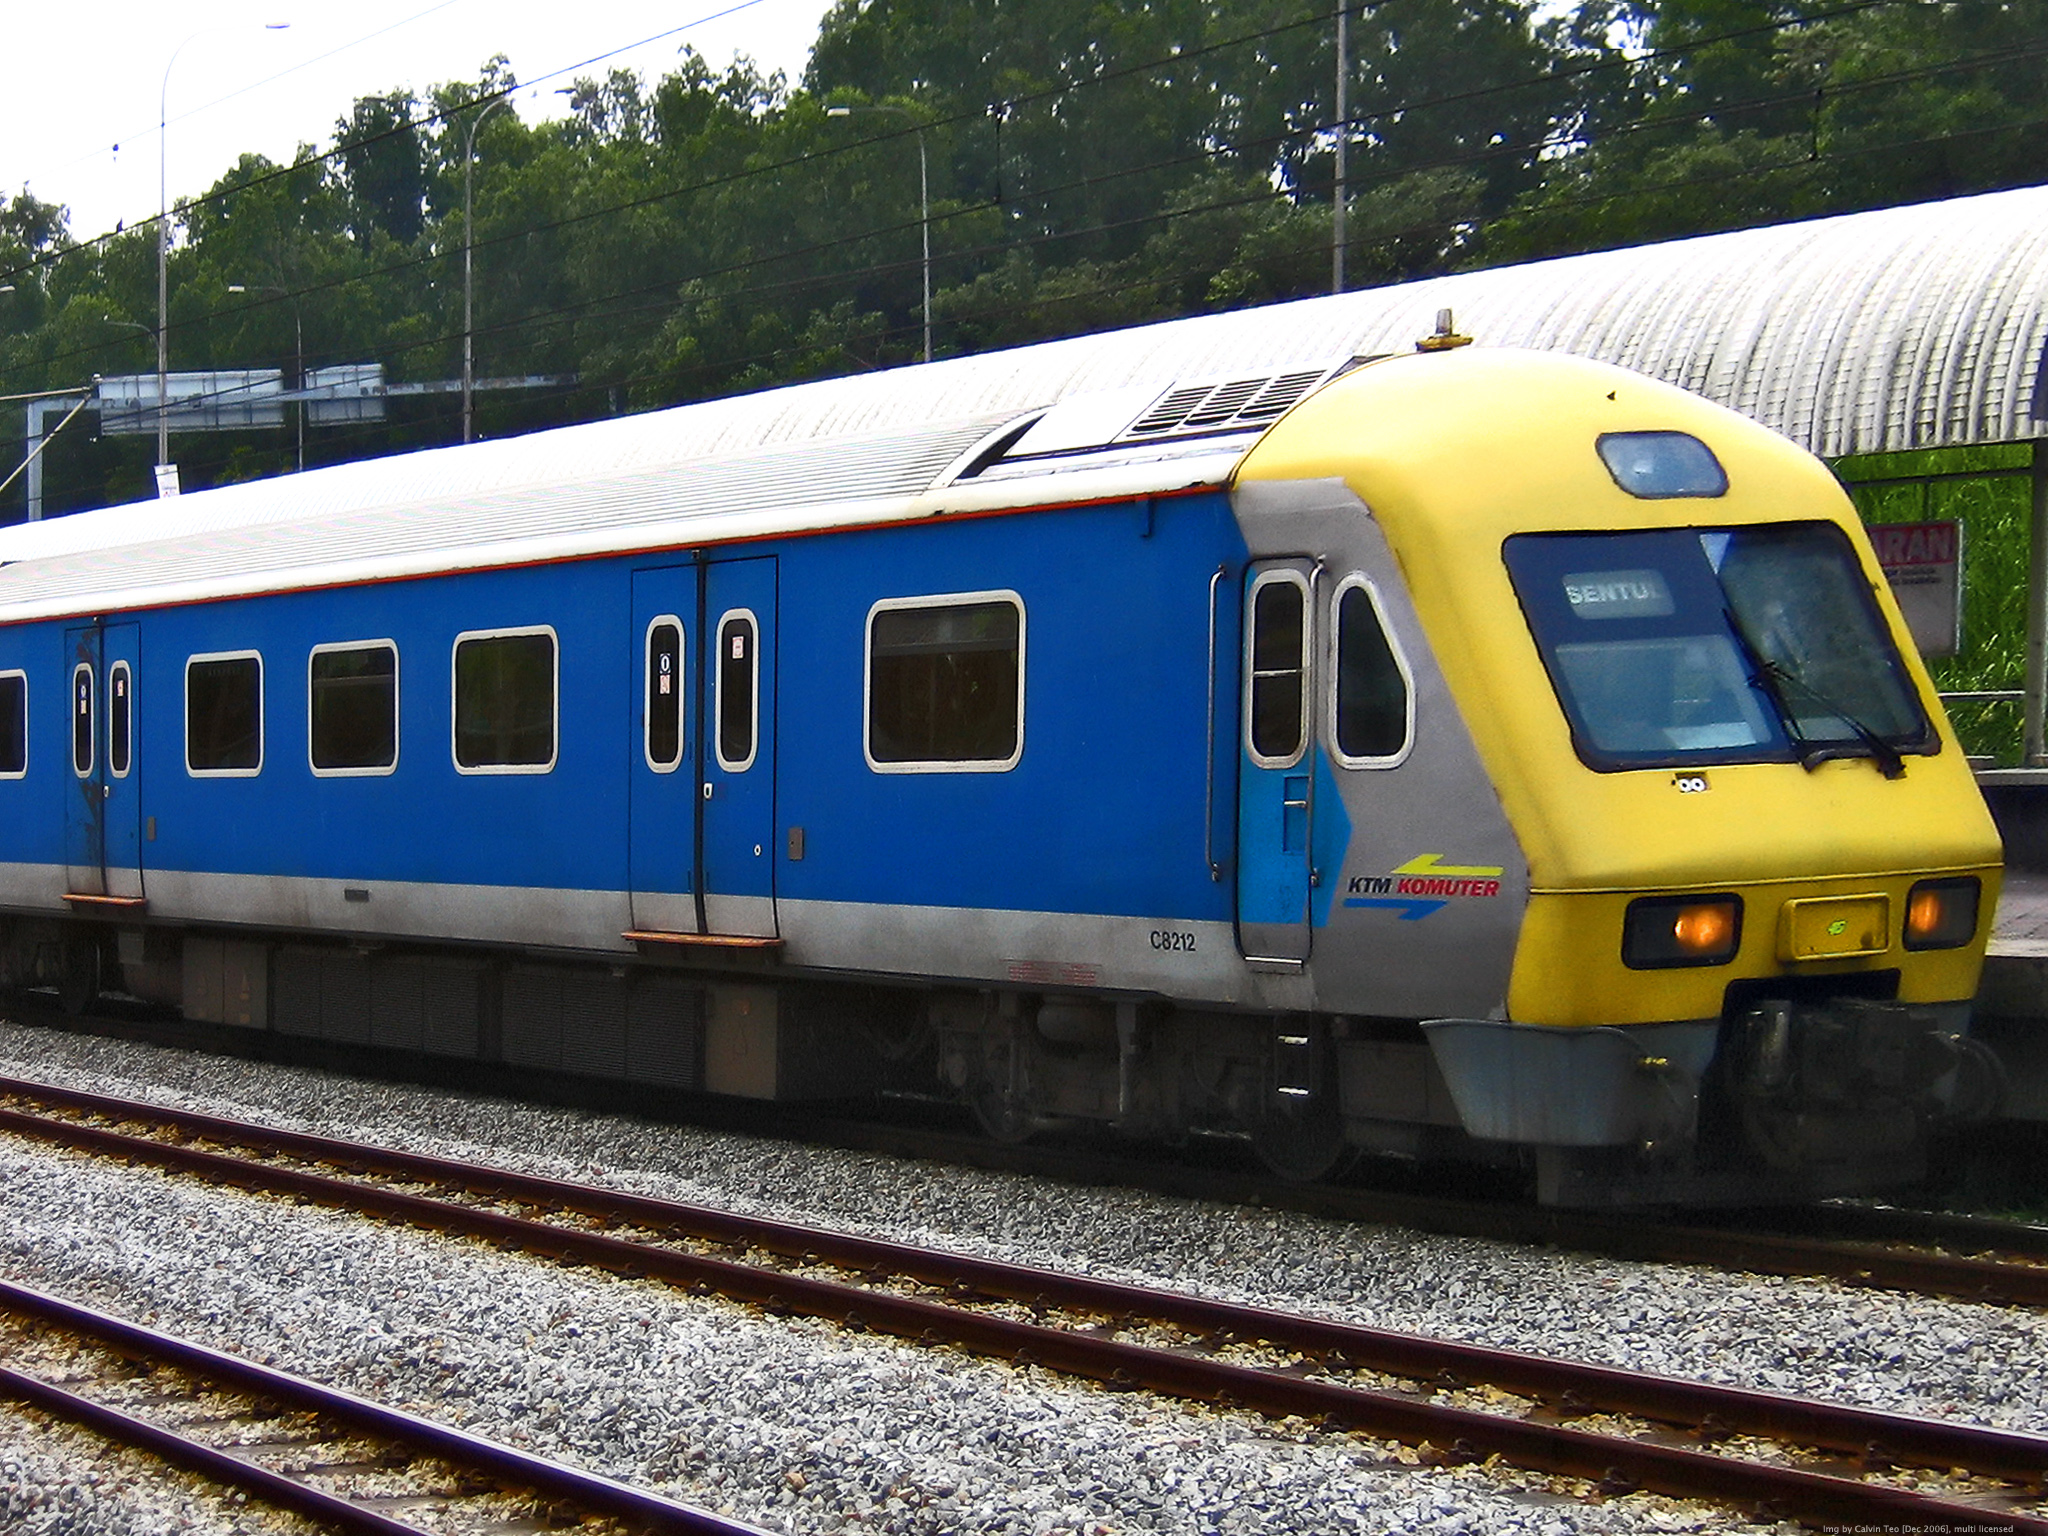 Ktm Wikipedia >> File:KTM Komuter Class 82.jpg - Wikimedia Commons